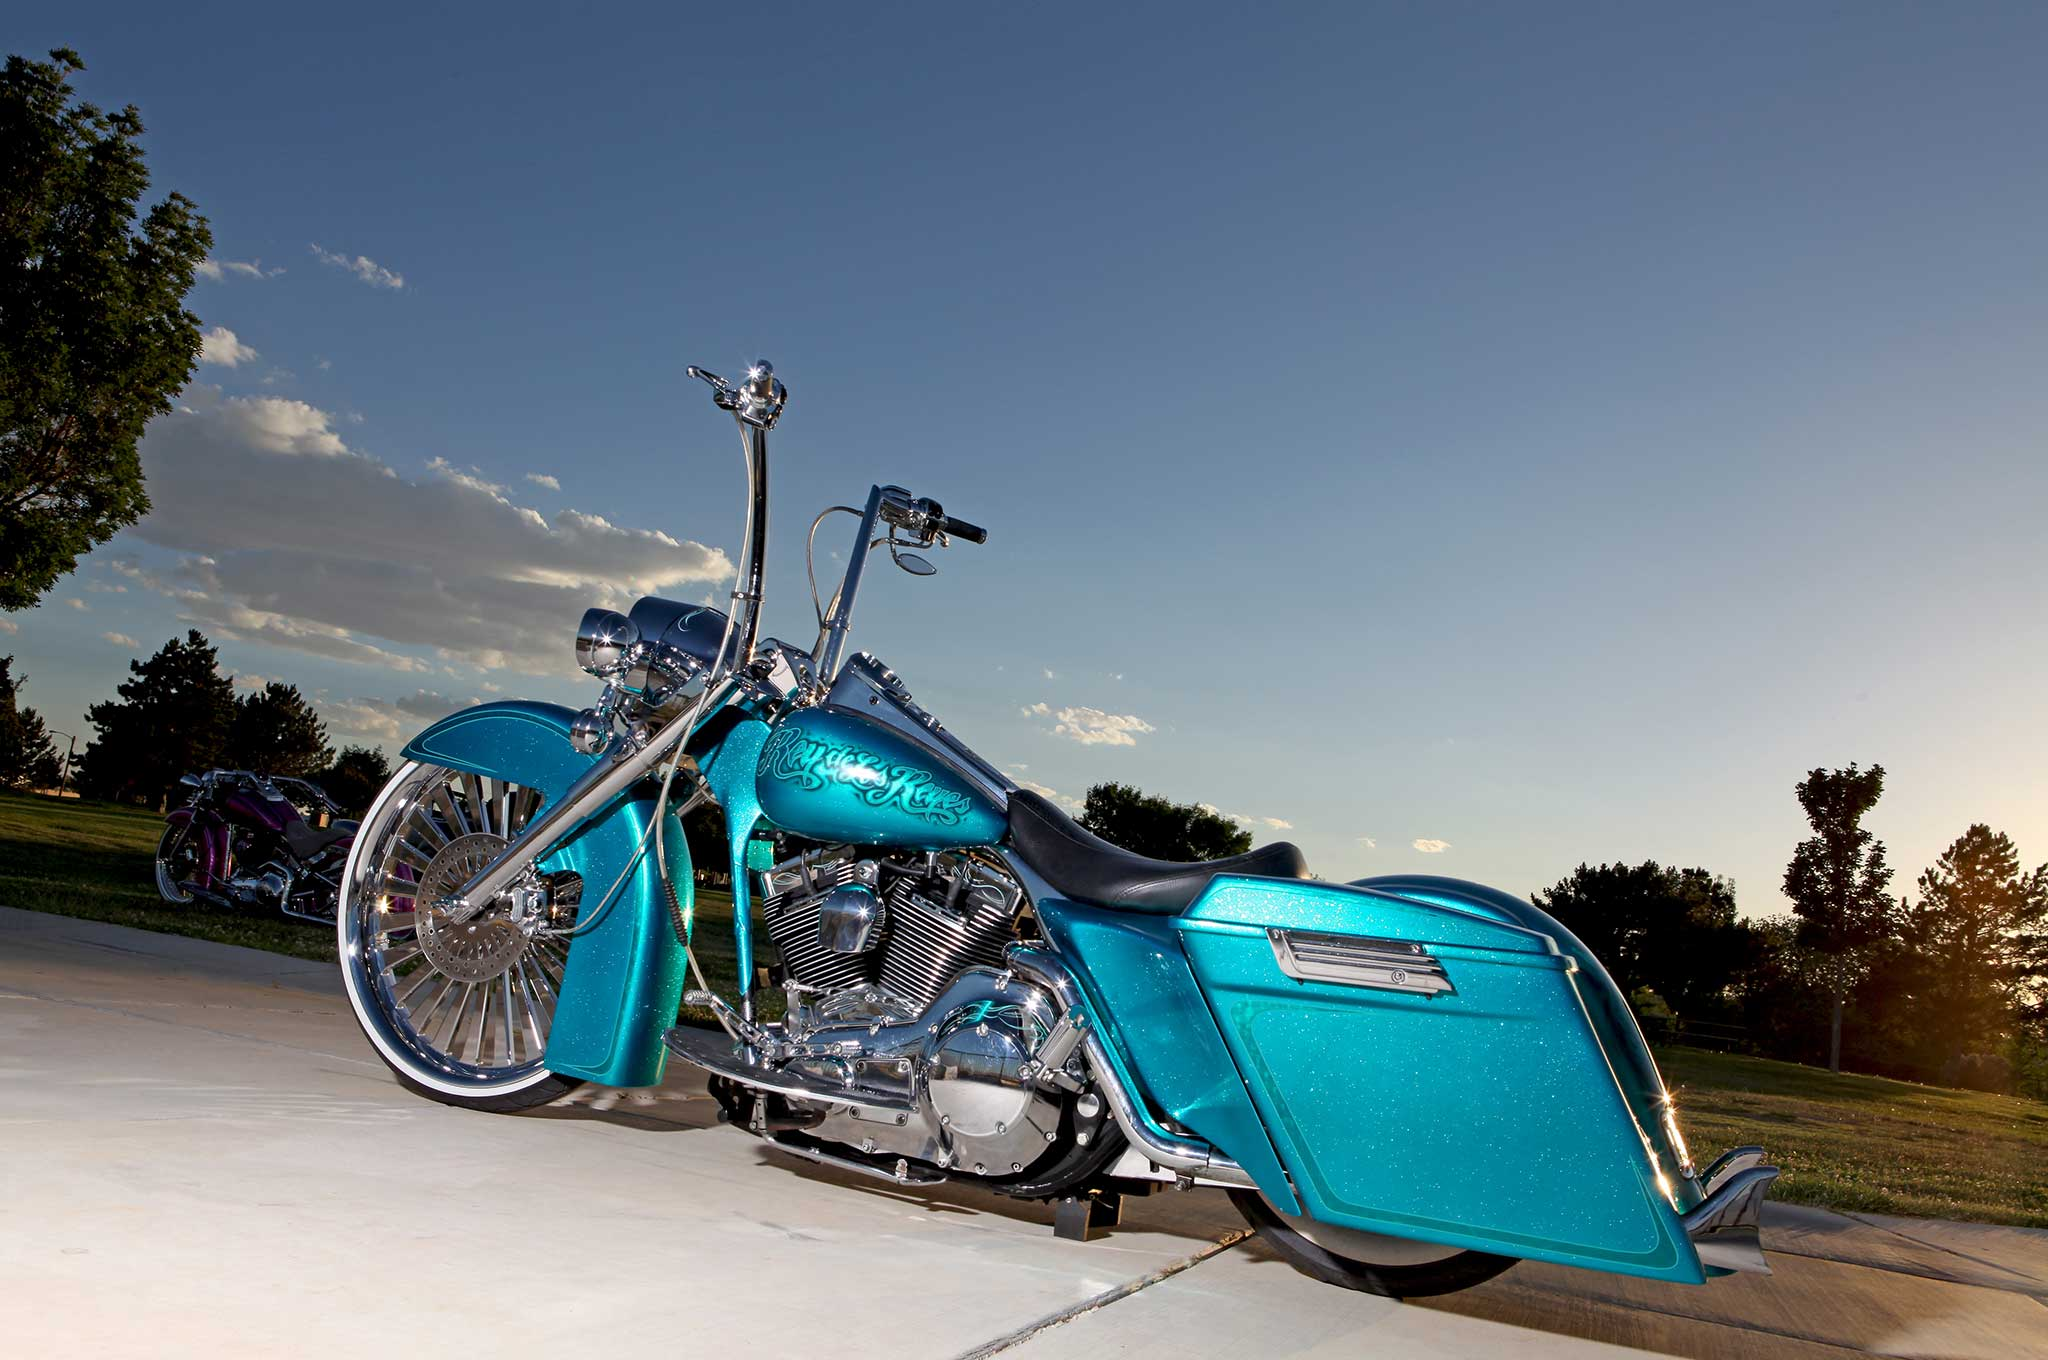 2004 Harley Davidson Road King King Of The Road Lowrider